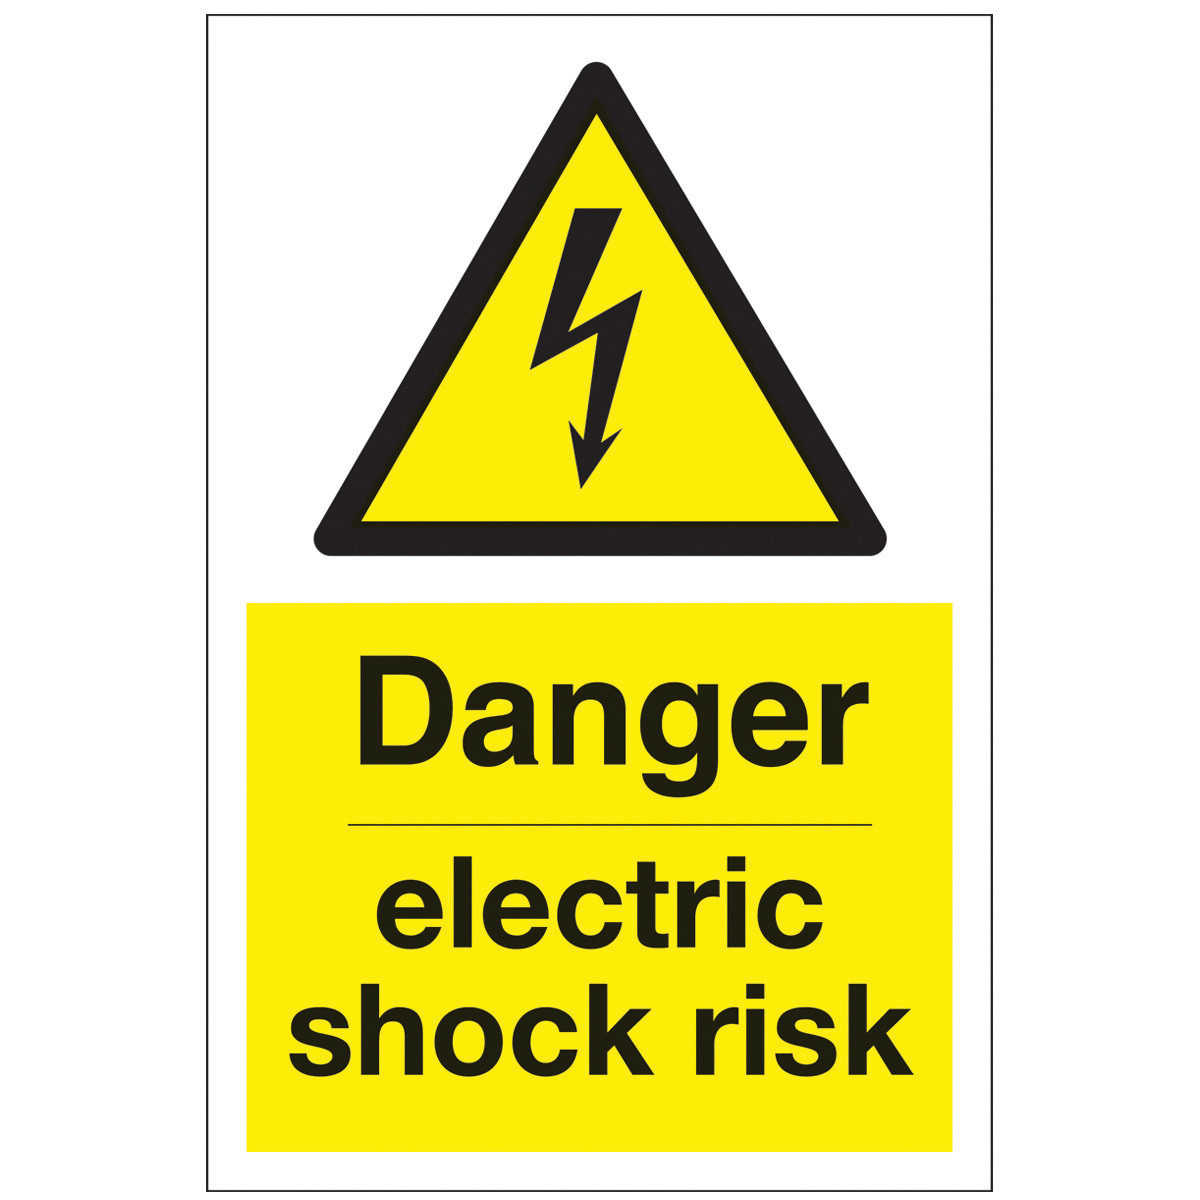 Cute electrical shock symbol gallery electrical and wiring 00020531higg biocorpaavc Choice Image